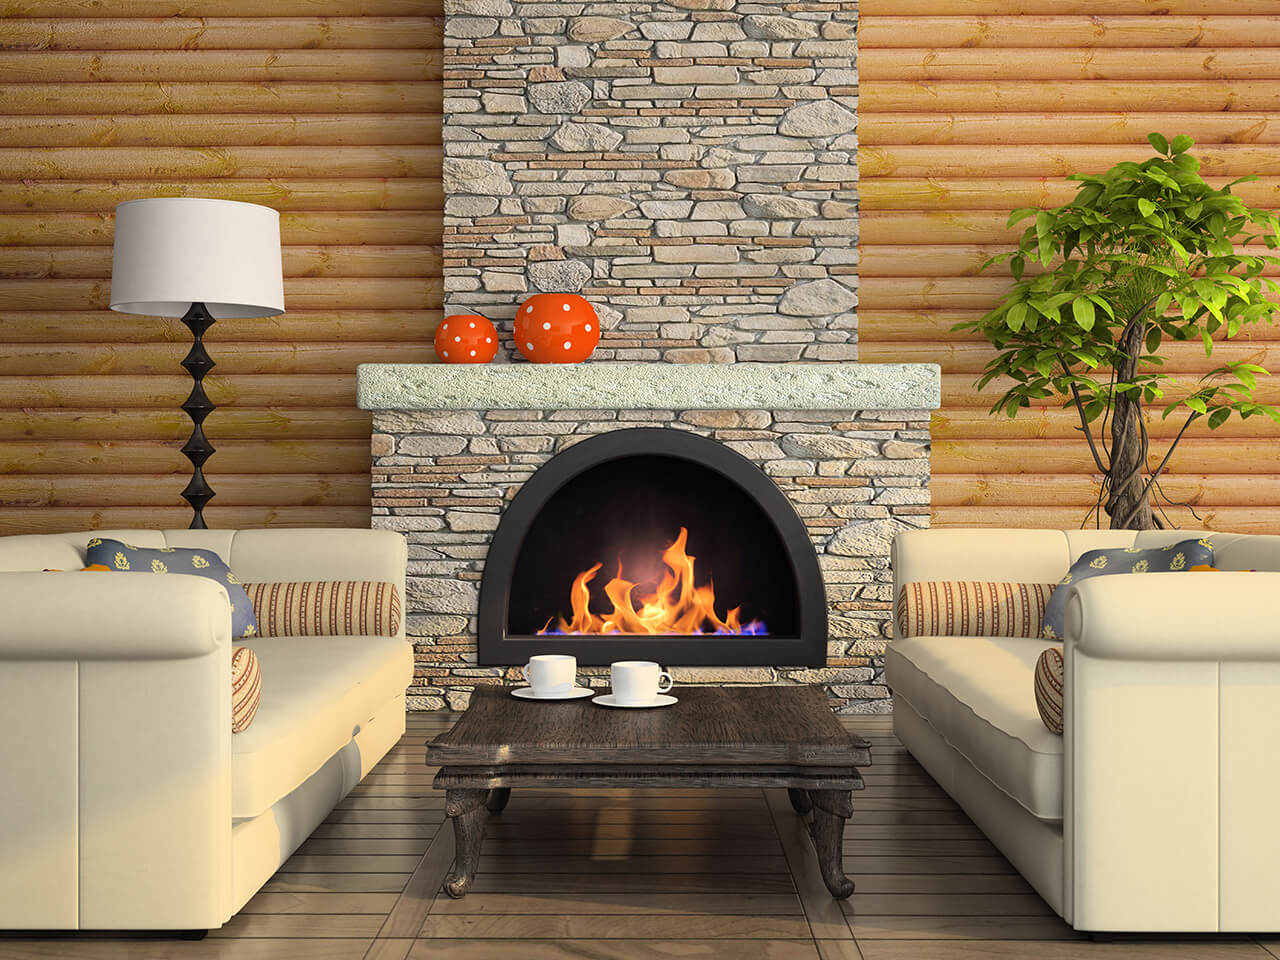 Steps to Prepare Your Fireplace for Use